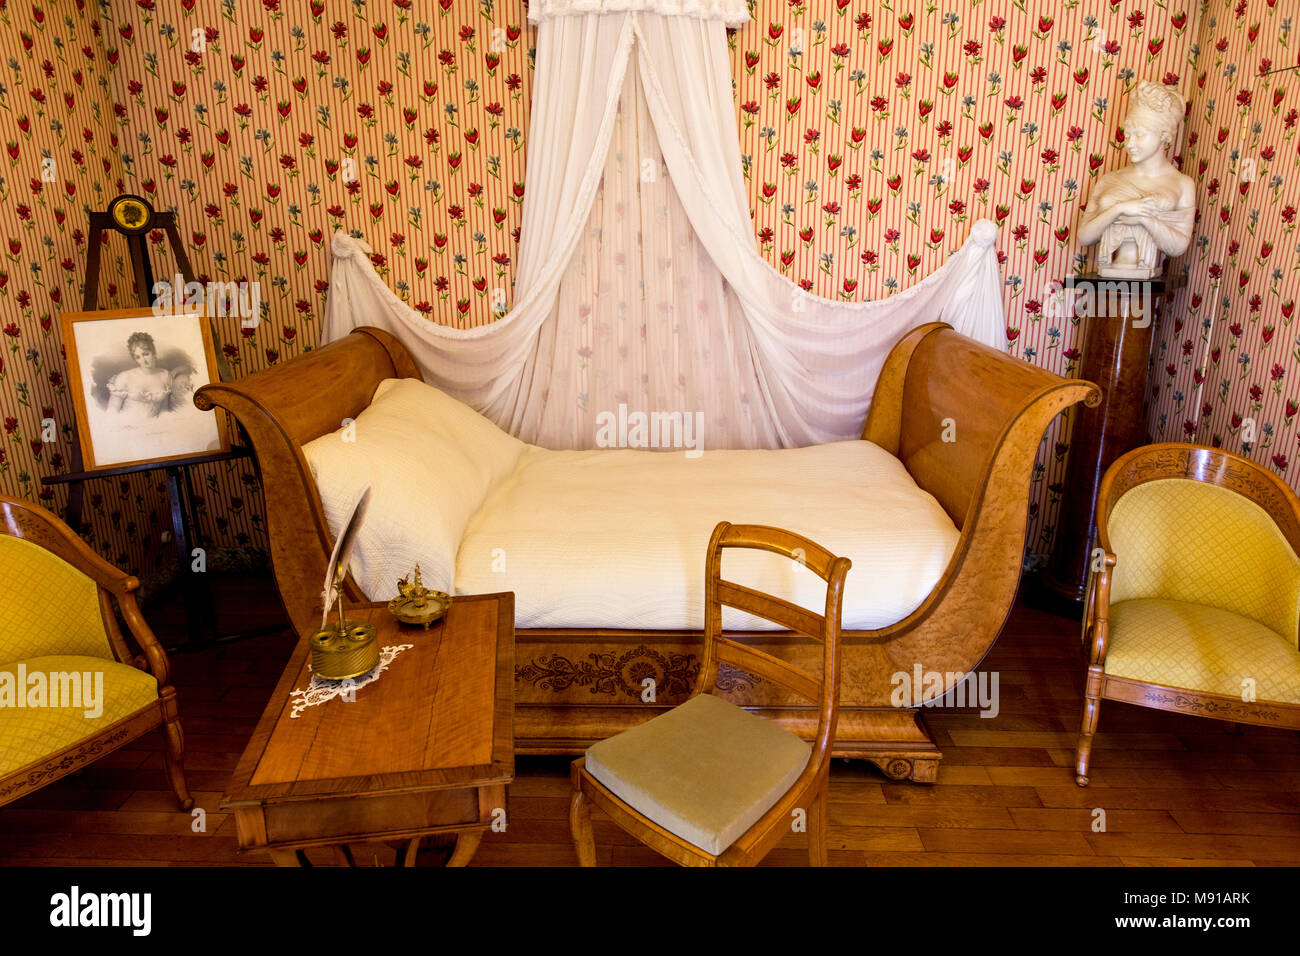 French 19th-century writer Chateaubriand's house in  Châtenay-Malabry, France. Juliette Récamier's bedroom with Charles X furniture. - Stock Image